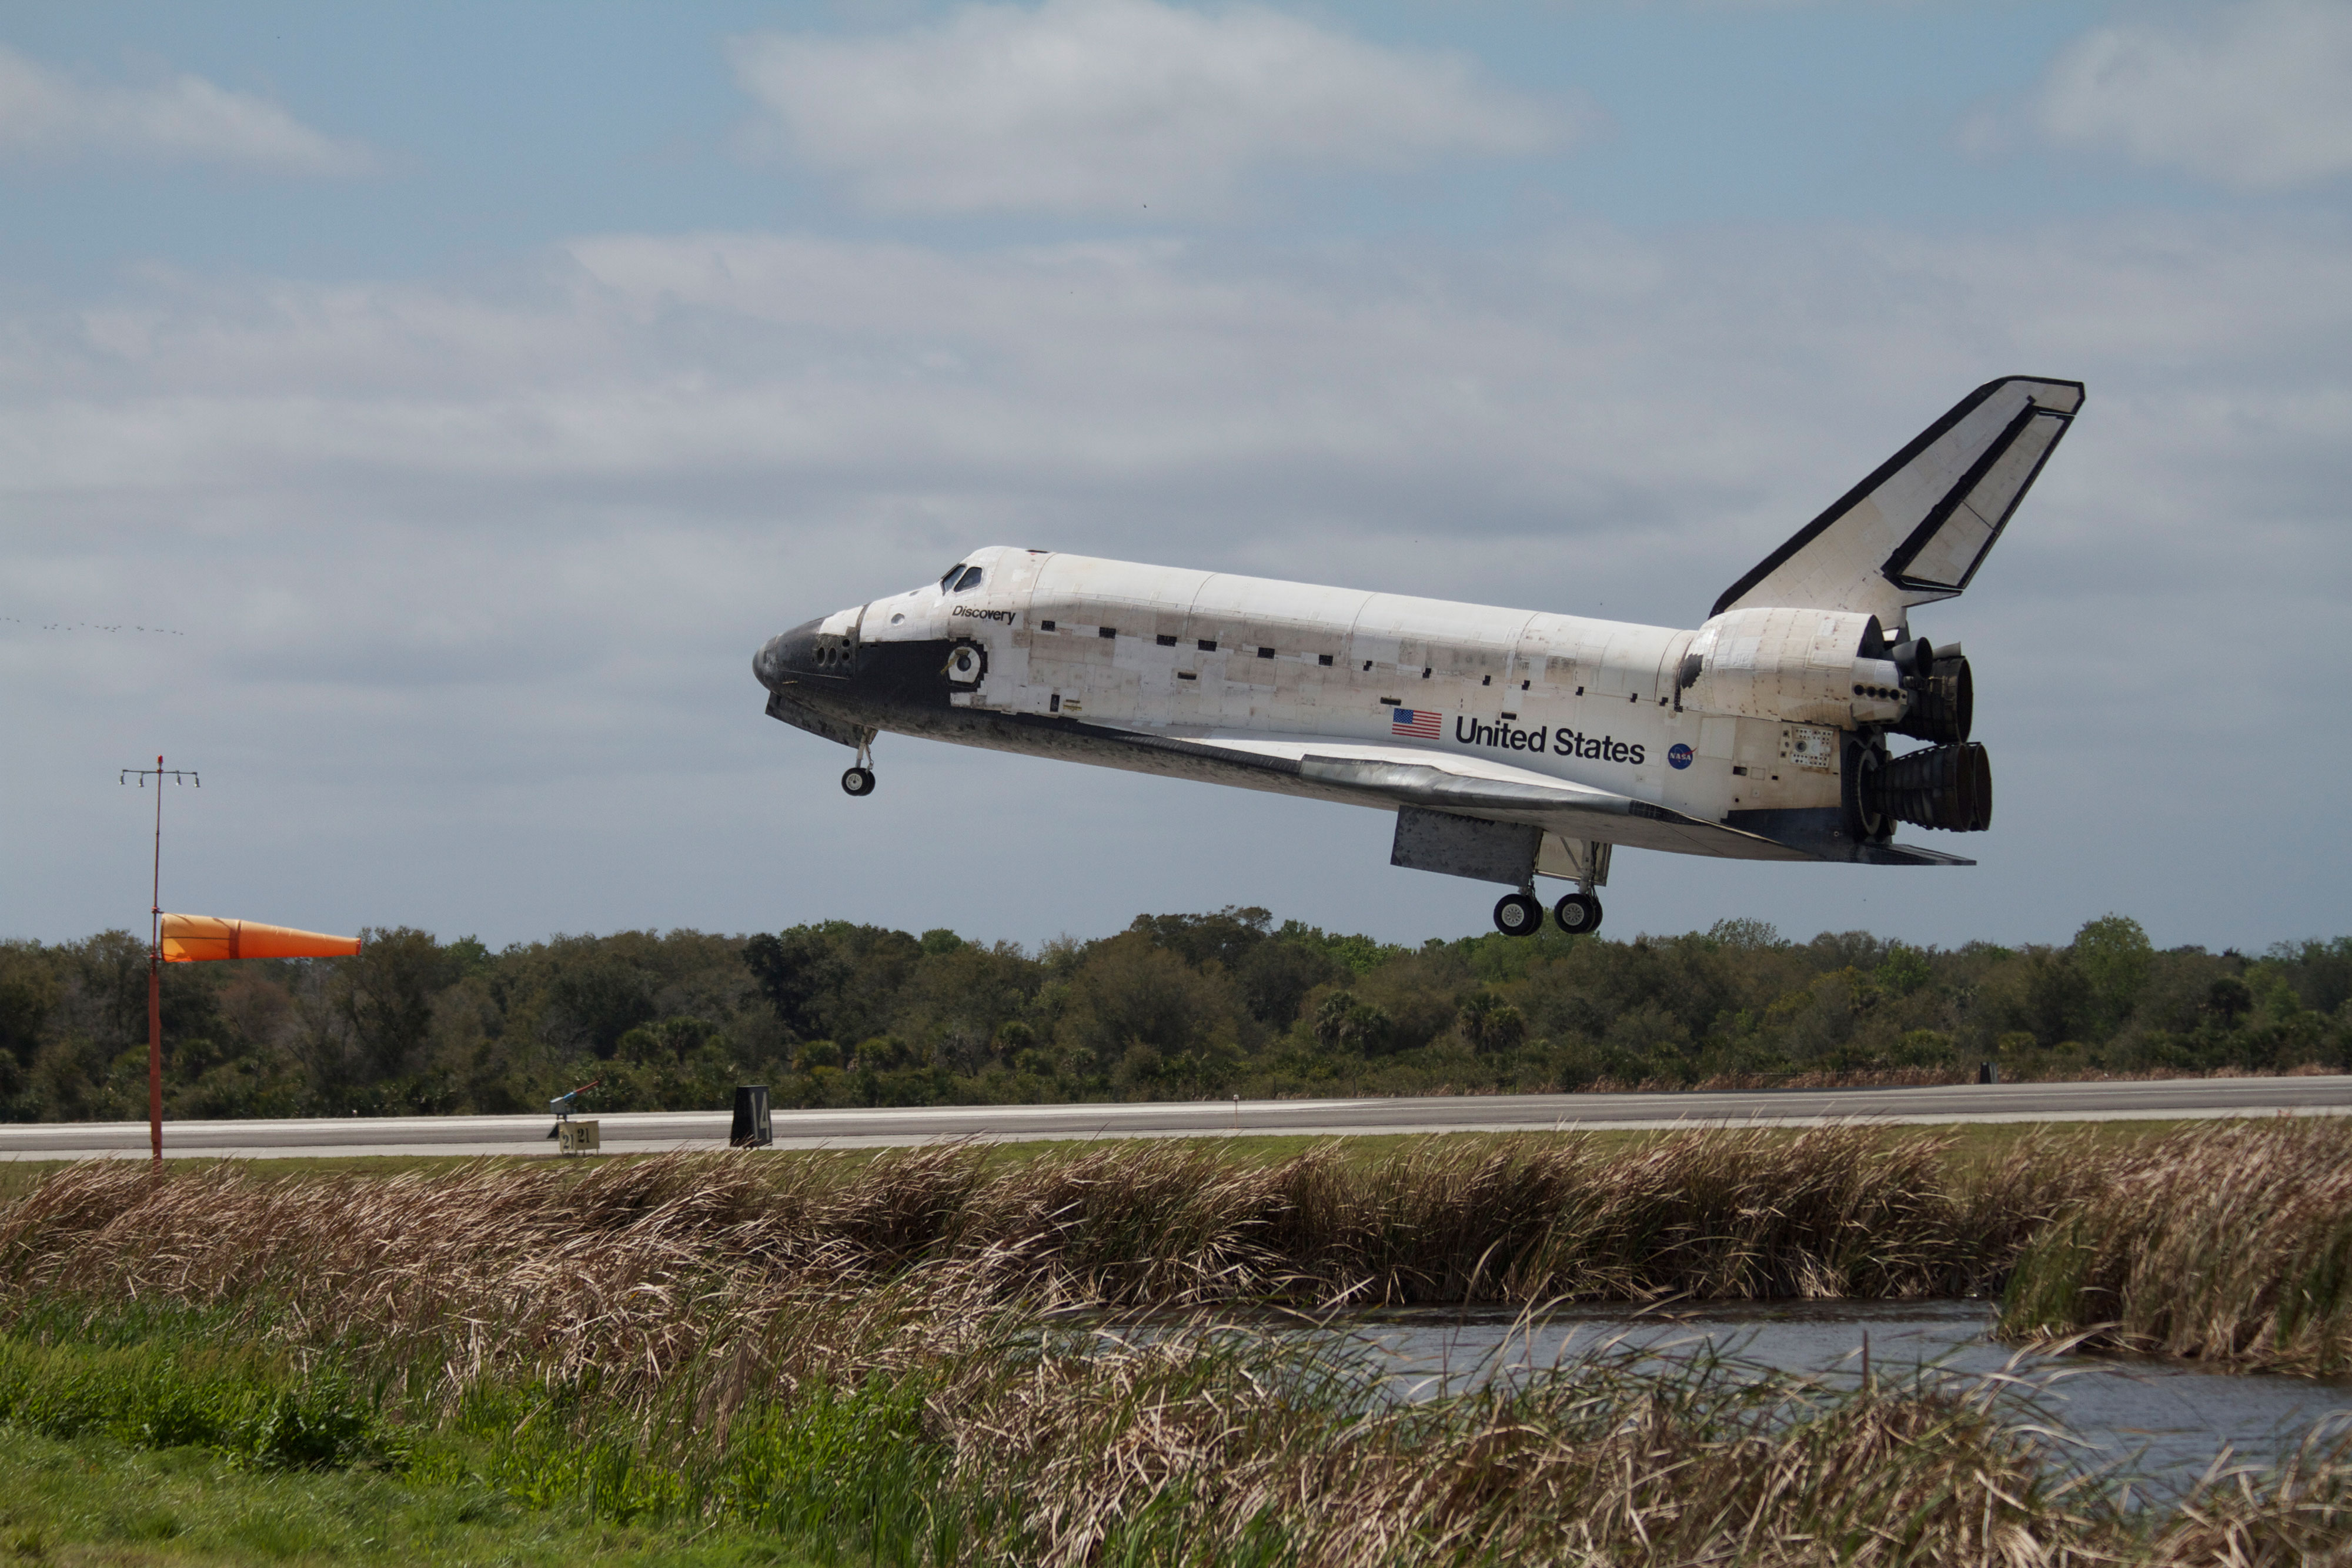 Space Shuttle Discovery nears touchdown at NASA's Kennedy Space Center in Florida. Landing was at 11:57 a.m. (EST) on March 9, 2011, completing a more than 12-day STS-133 mission to the International Space Station. Photo: Chase Clark